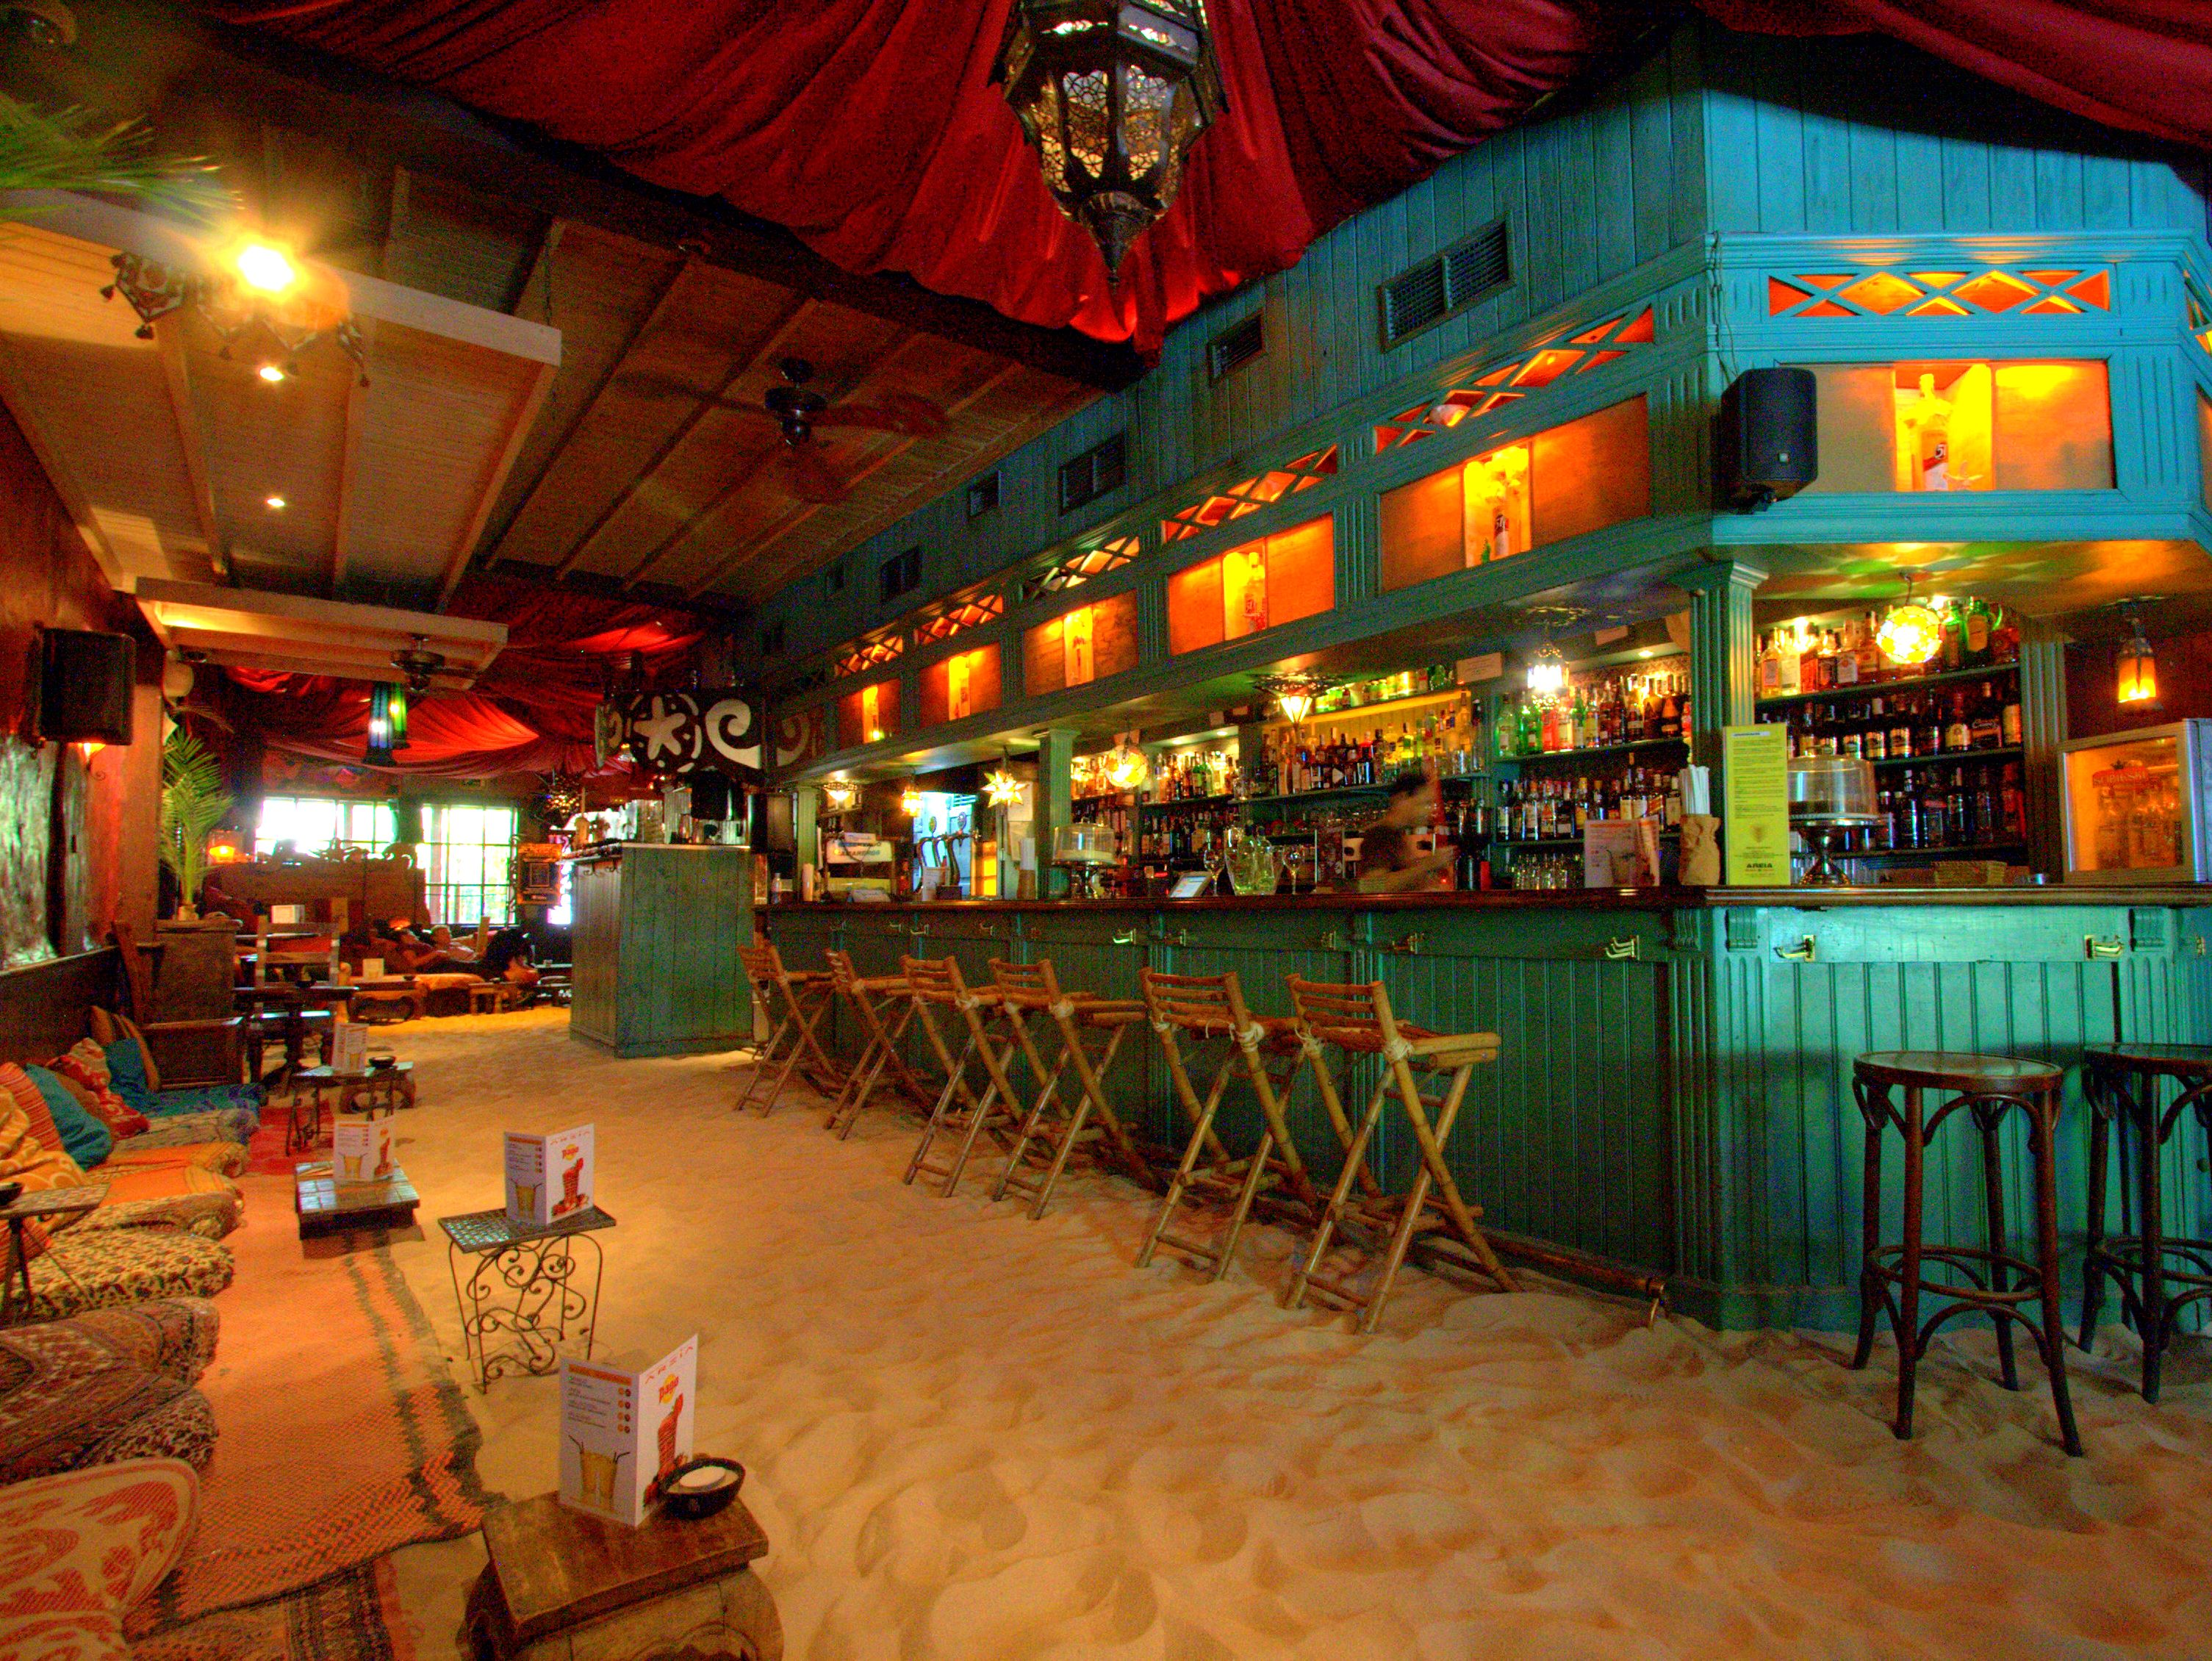 Sand bar indoor beach - inspired naturally study, read